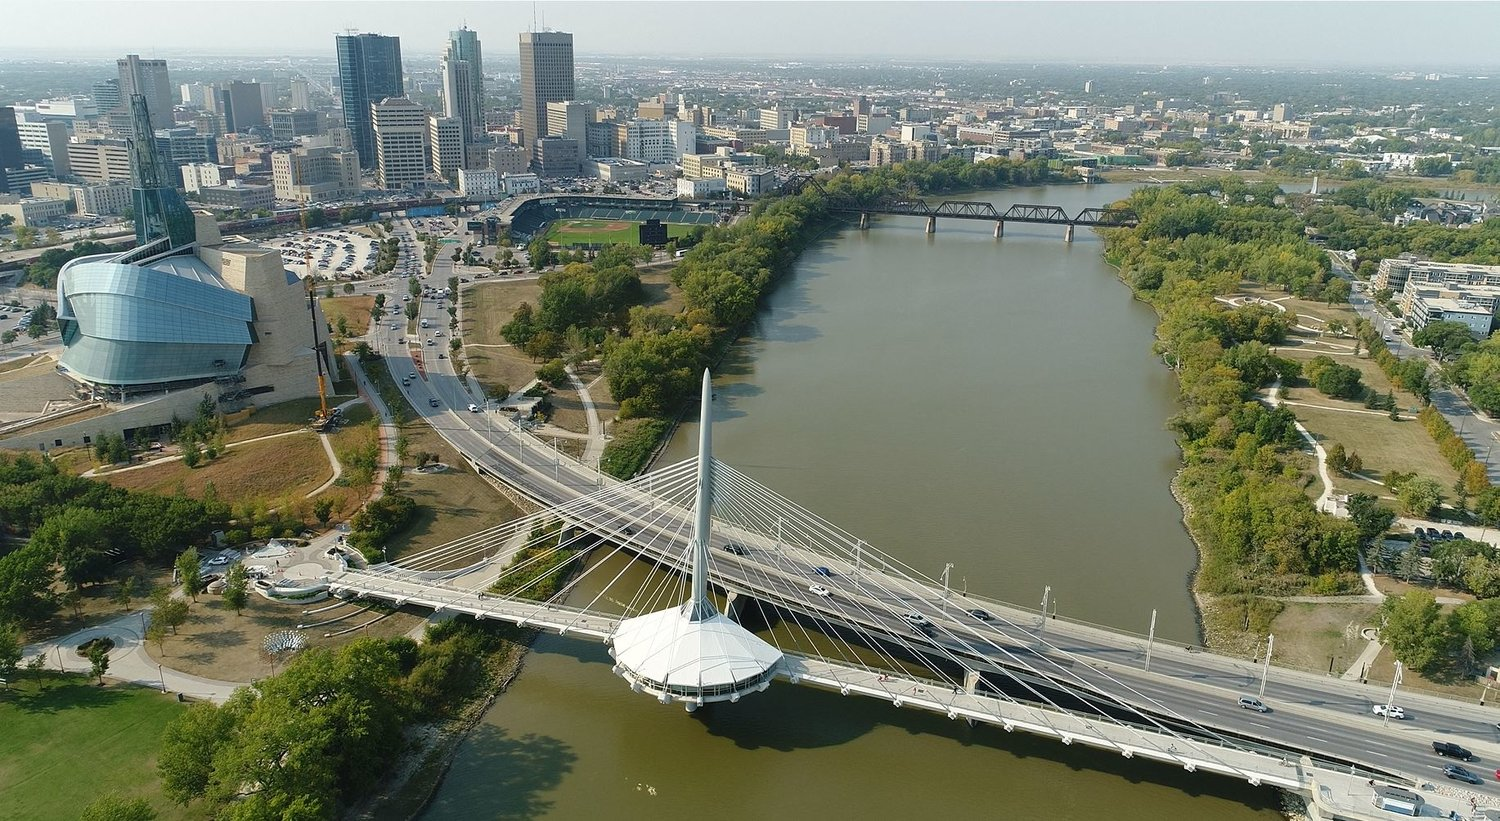 drone picture of winnipeg aerial view of downtown and provencher bridge museum of human rights.jpg